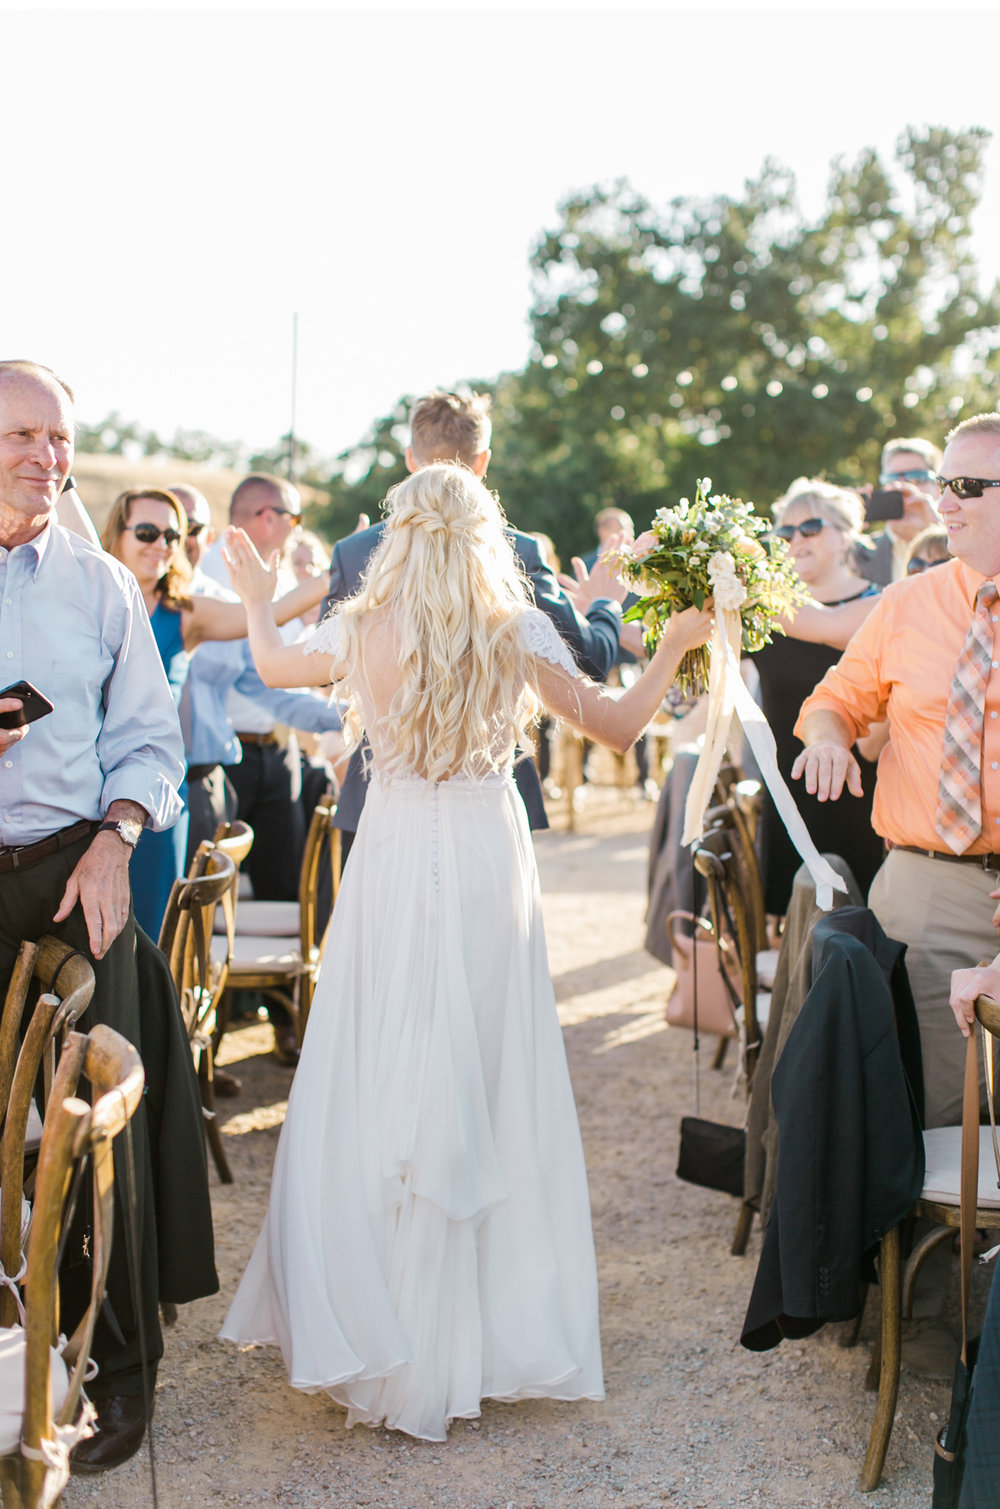 Natalie-Schutt-Photography's-Wedding-Style-Me-Pretty-Paso-Robles_12.jpg